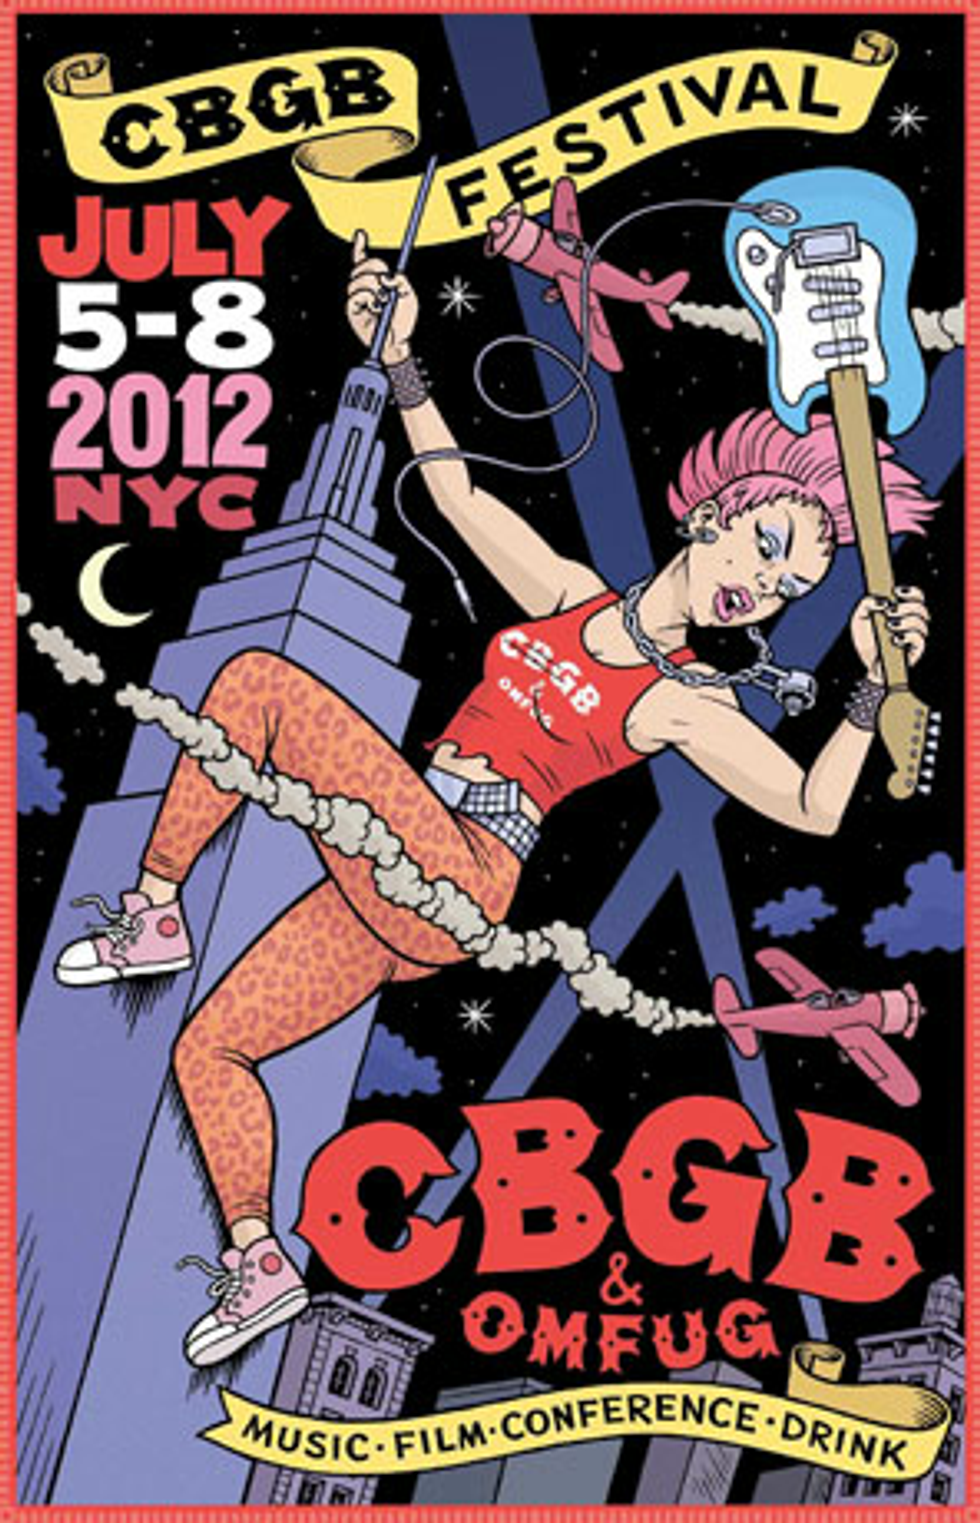 Tips for Today: CBGB Festival in NYC + Mates of State in L.A. + oOoOO in Chicago + Gossip in London